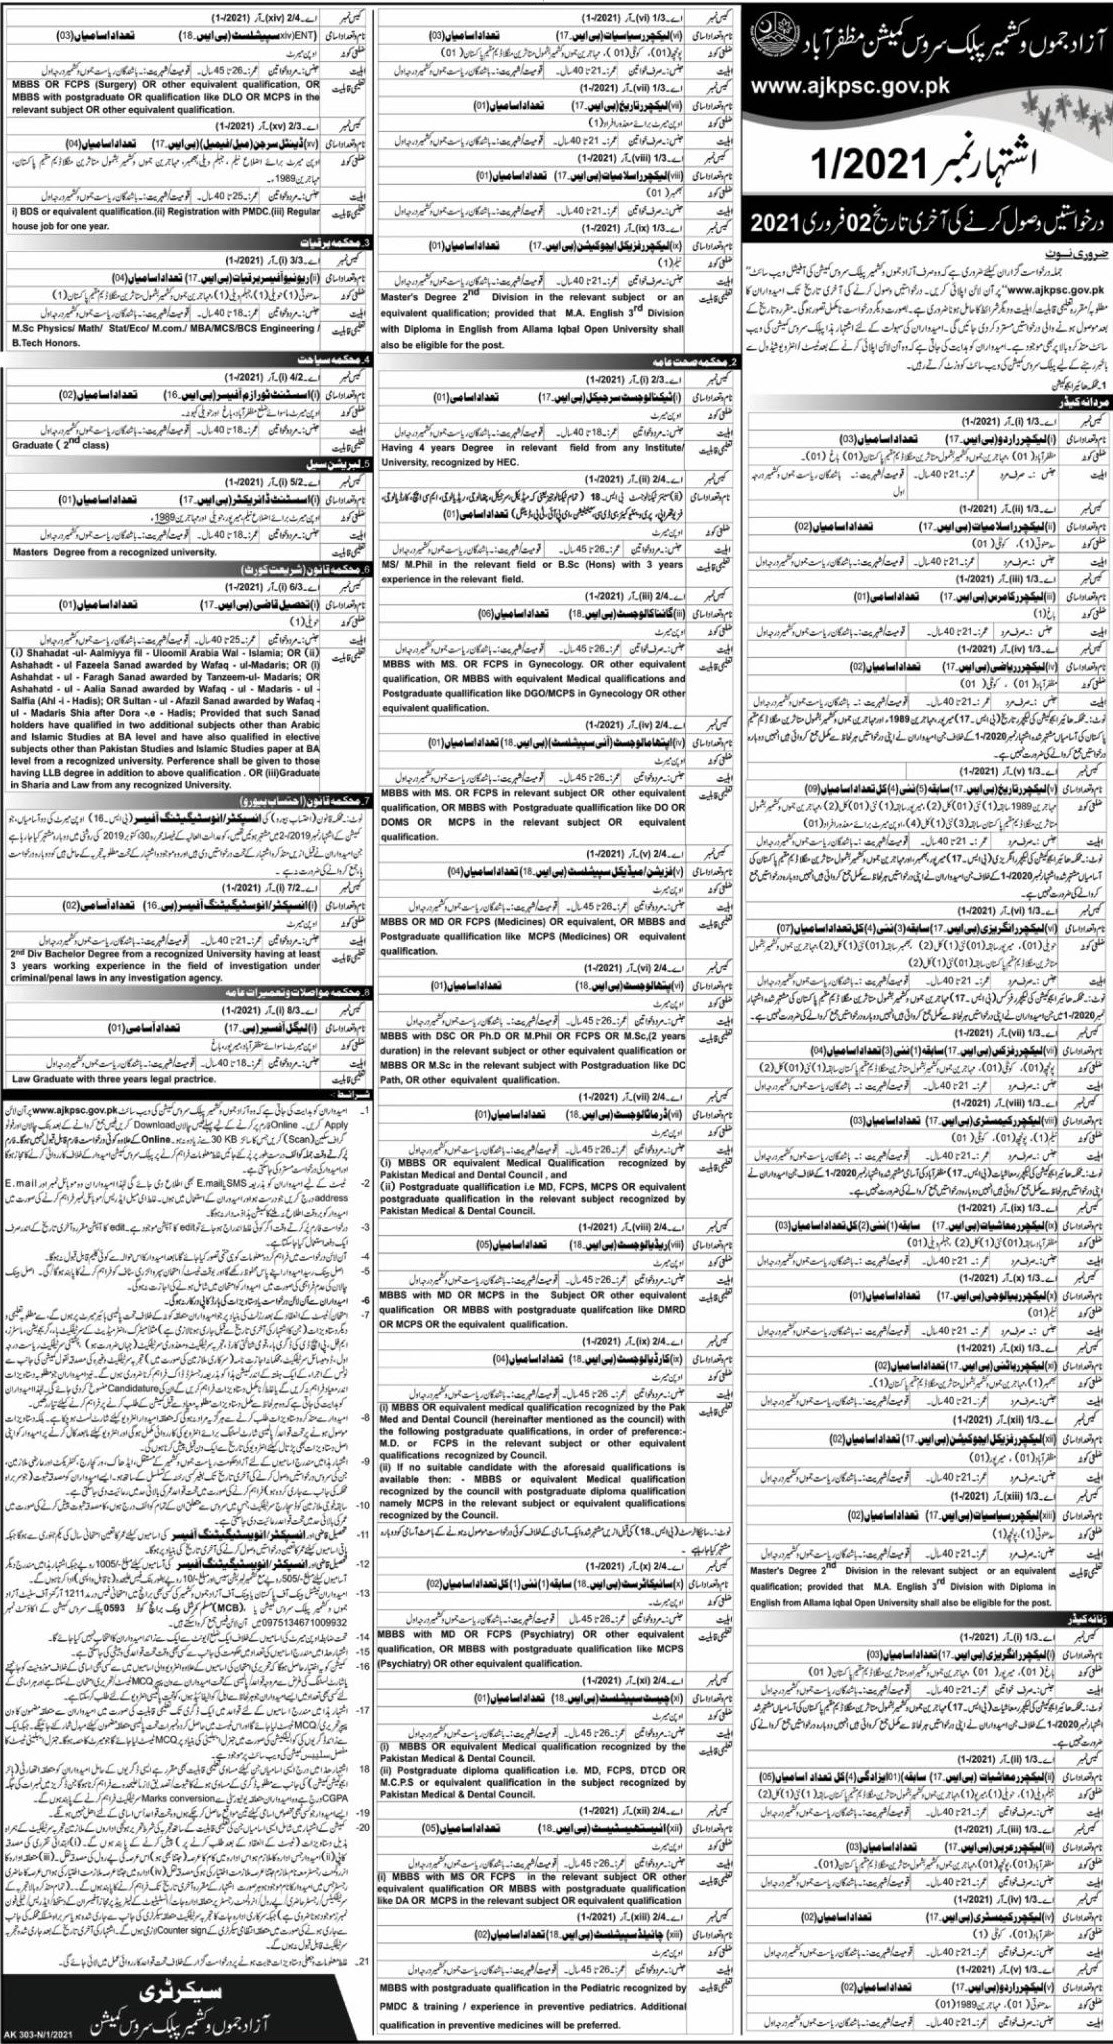 Health Department jobs newspaper ad for Gynecologist in Muzaffarabad on 2021-01-12